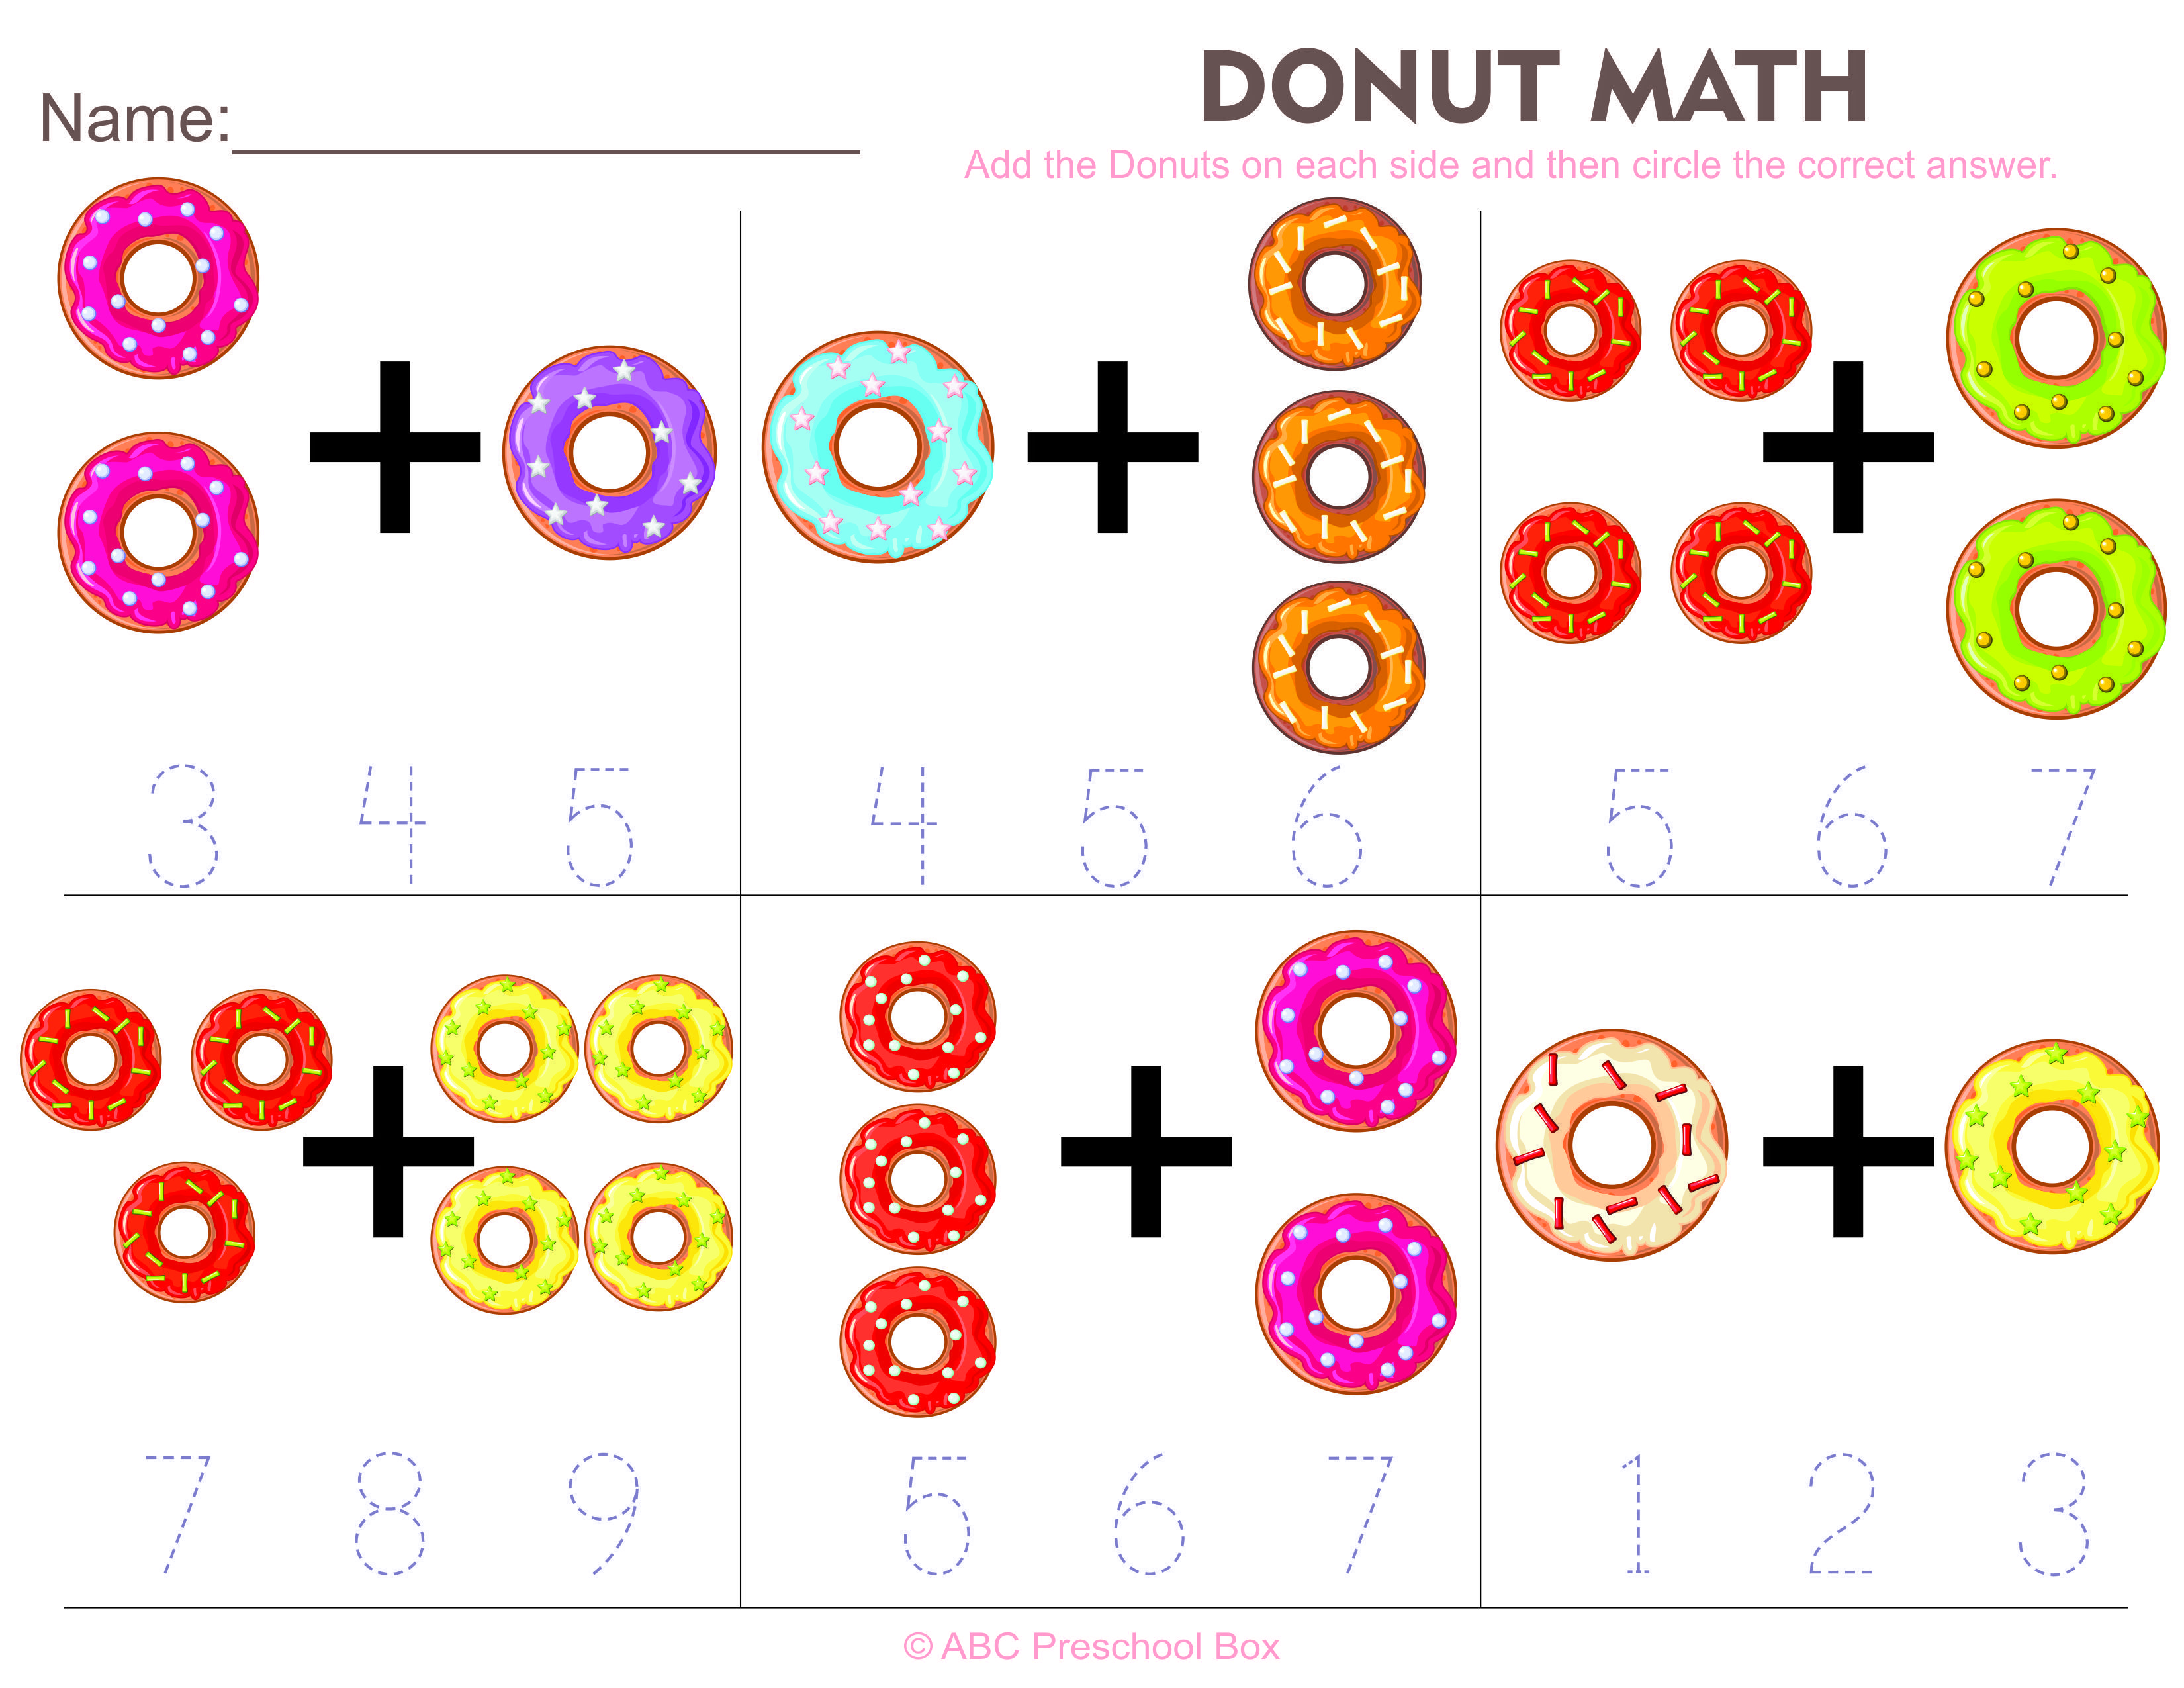 Donut Math Preschool Worksheet From Abcpreschoolbox Com